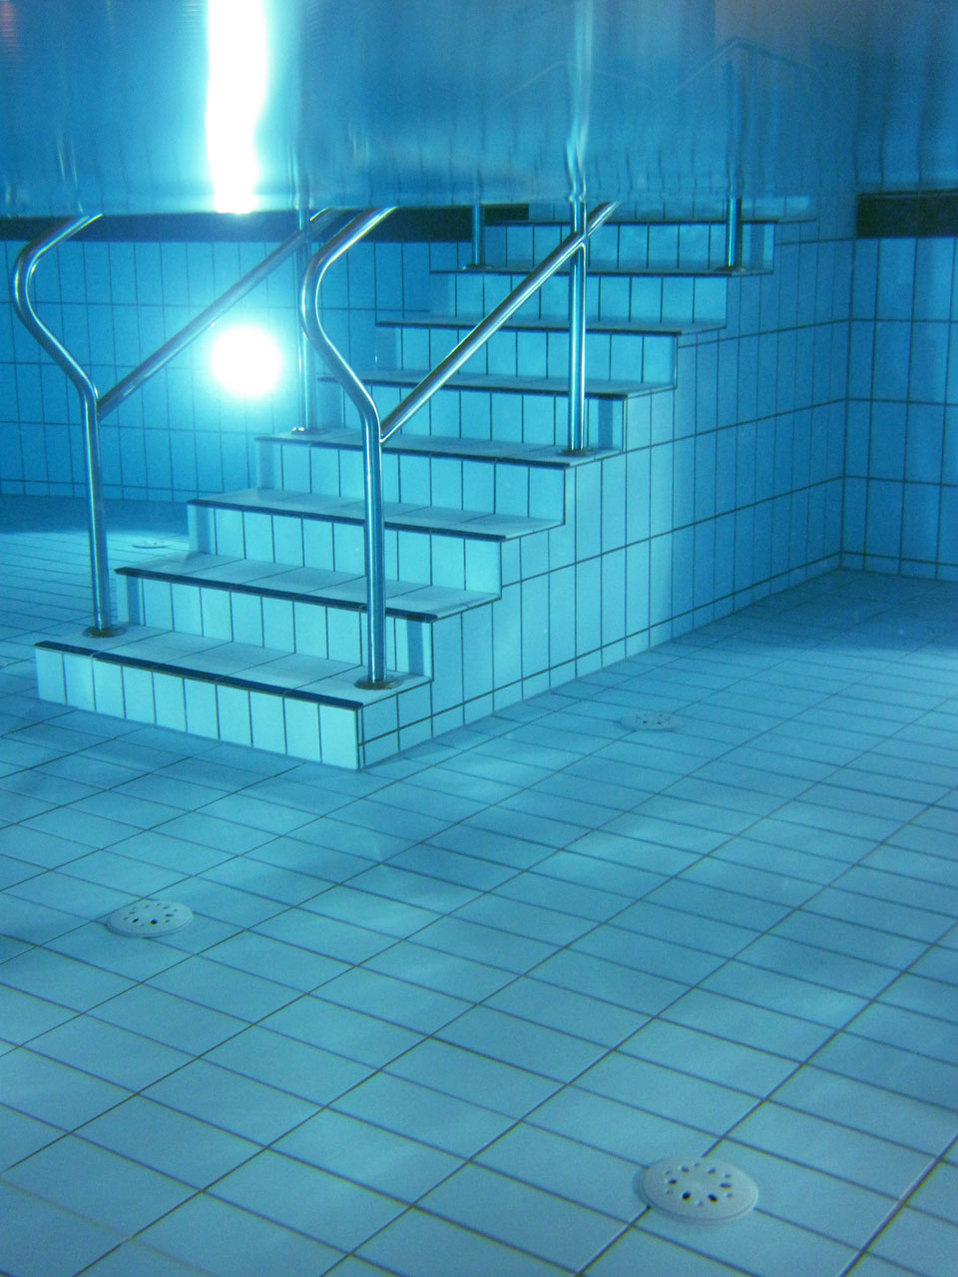 Pool stairs underwater